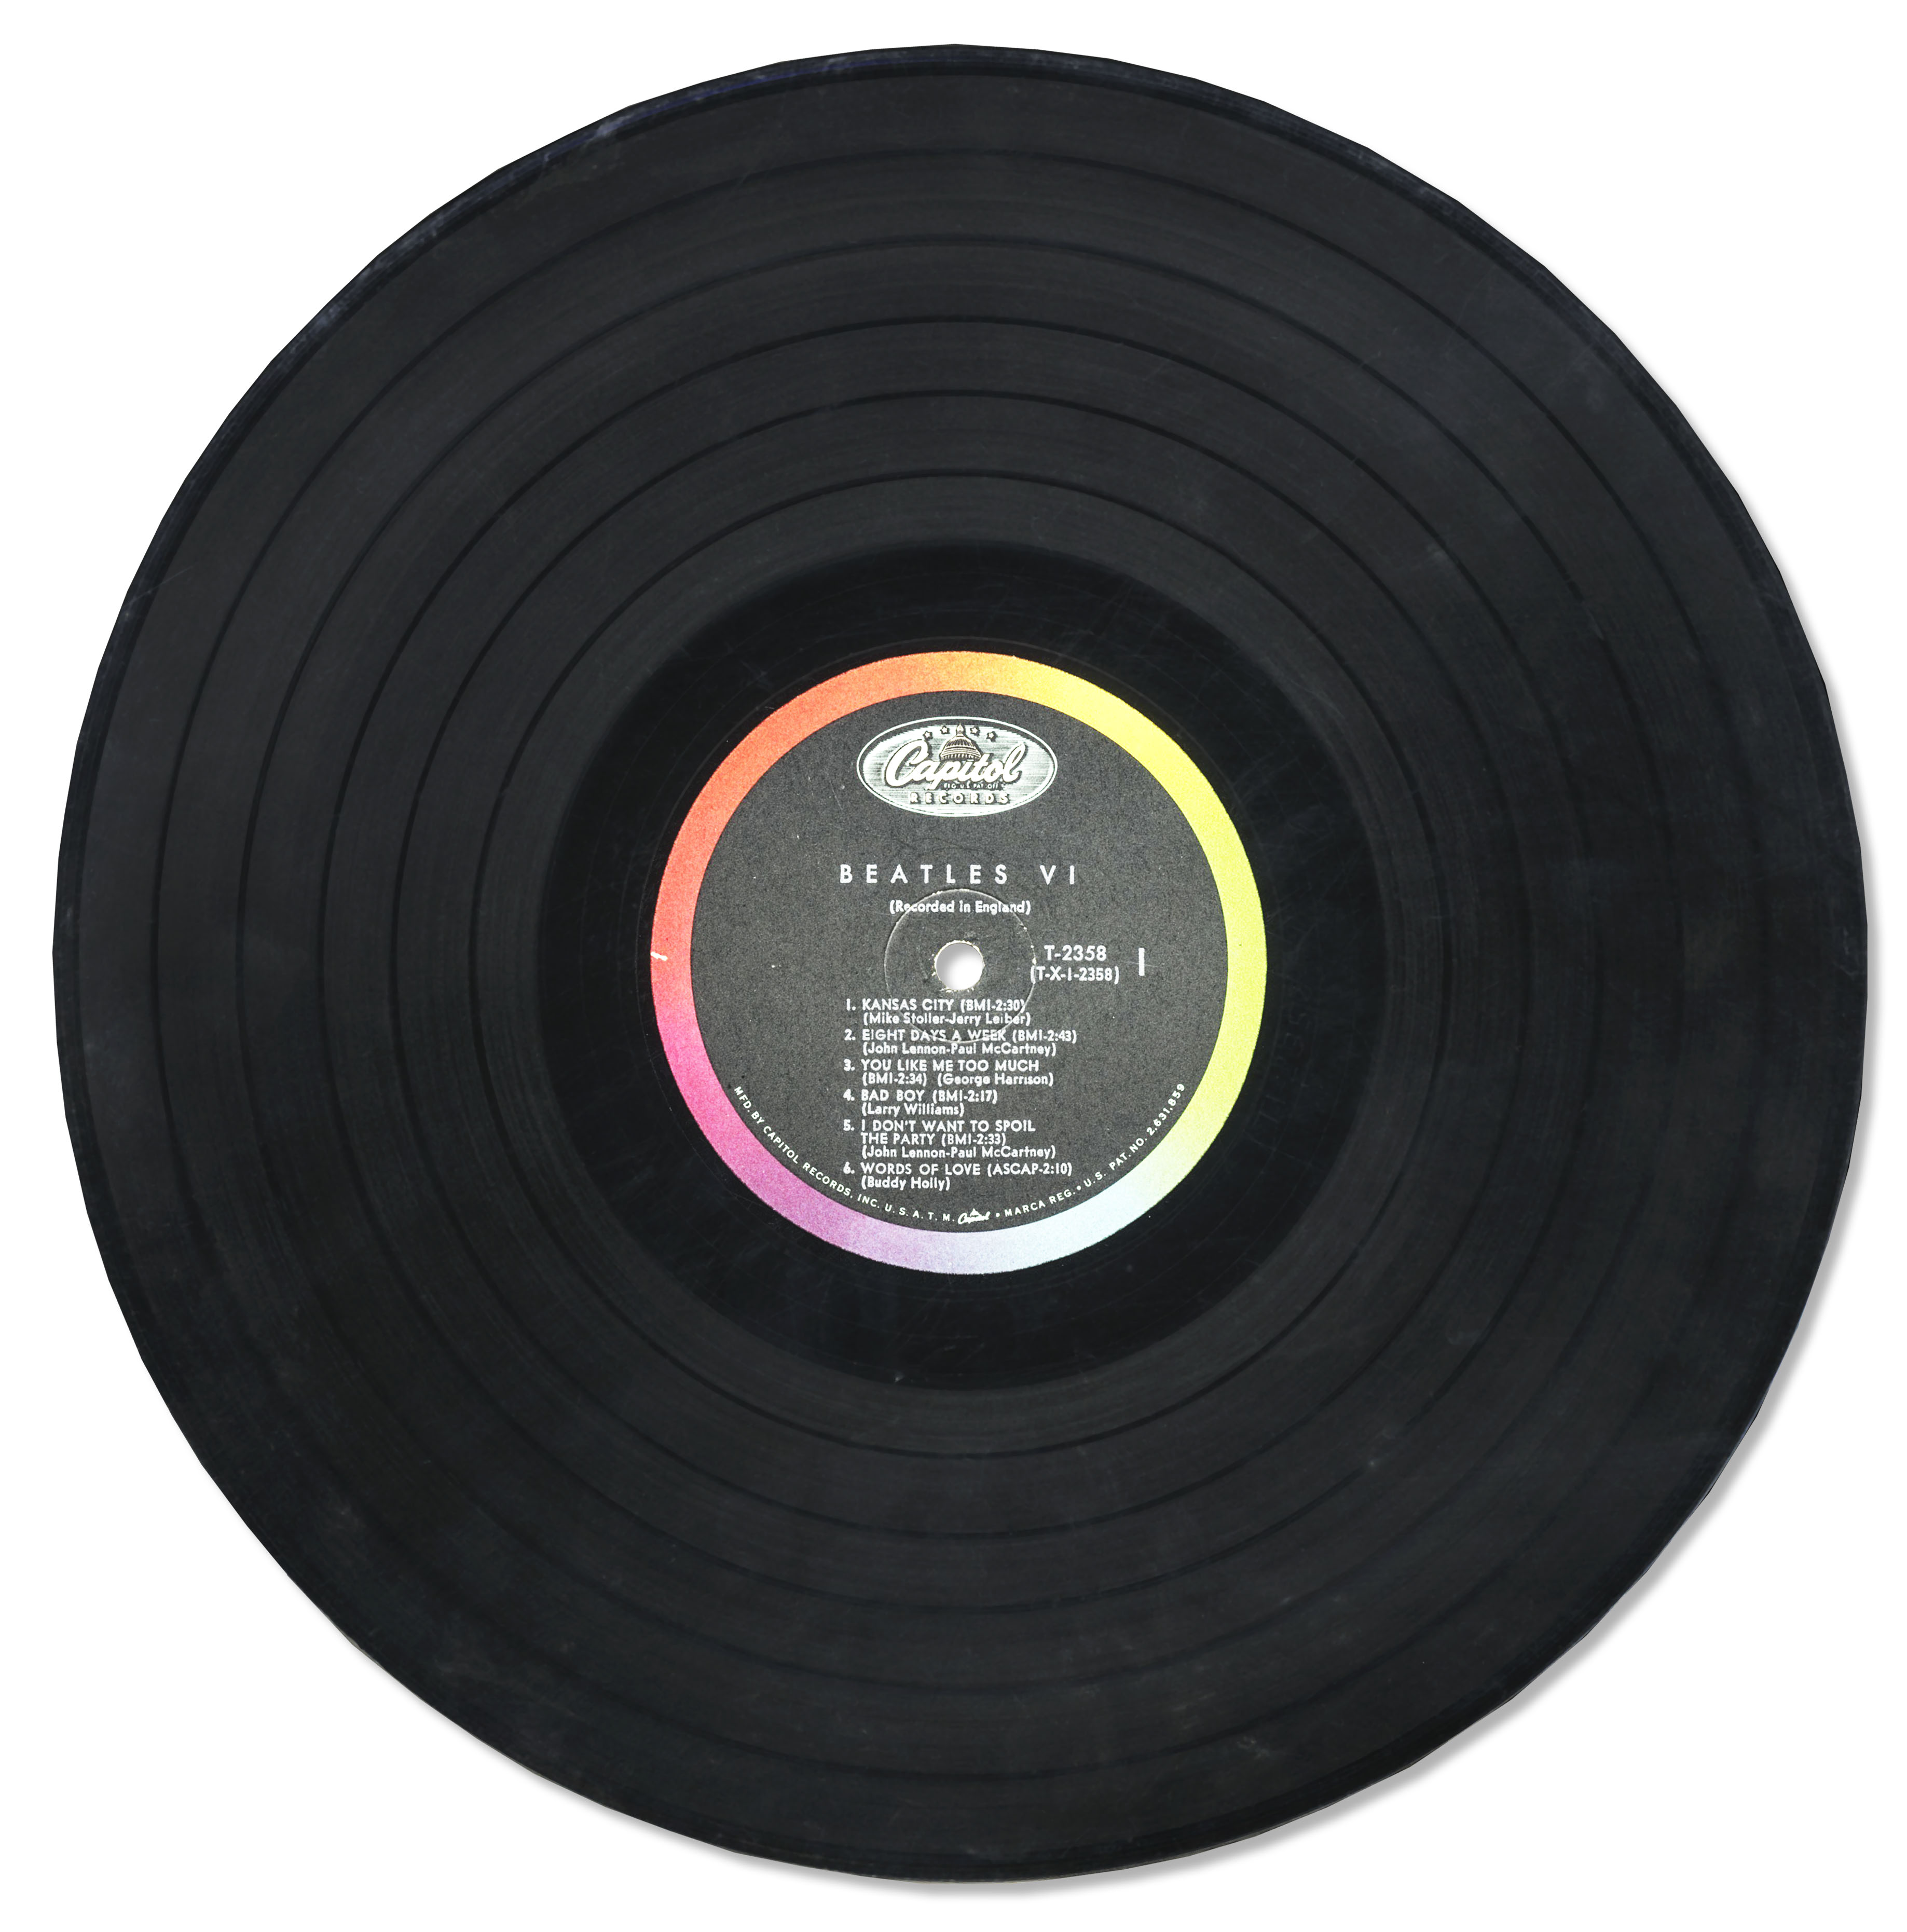 Lot Detail  Paul Mccartney Signed Beatles Record. What Is Commercial Insurance. Mortgage Loan Originators Pipp Mobile Storage. Diamond Turning Machine A Plan To Lose Weight. What Is Management Information Systems. Refinance A Vehicle Loan Car With Poor Credit. South Carolina Criminal Defense Lawyers. Free Online Audio Courses Domain Name Parking. Practical Masters Degrees Food Package Sealer